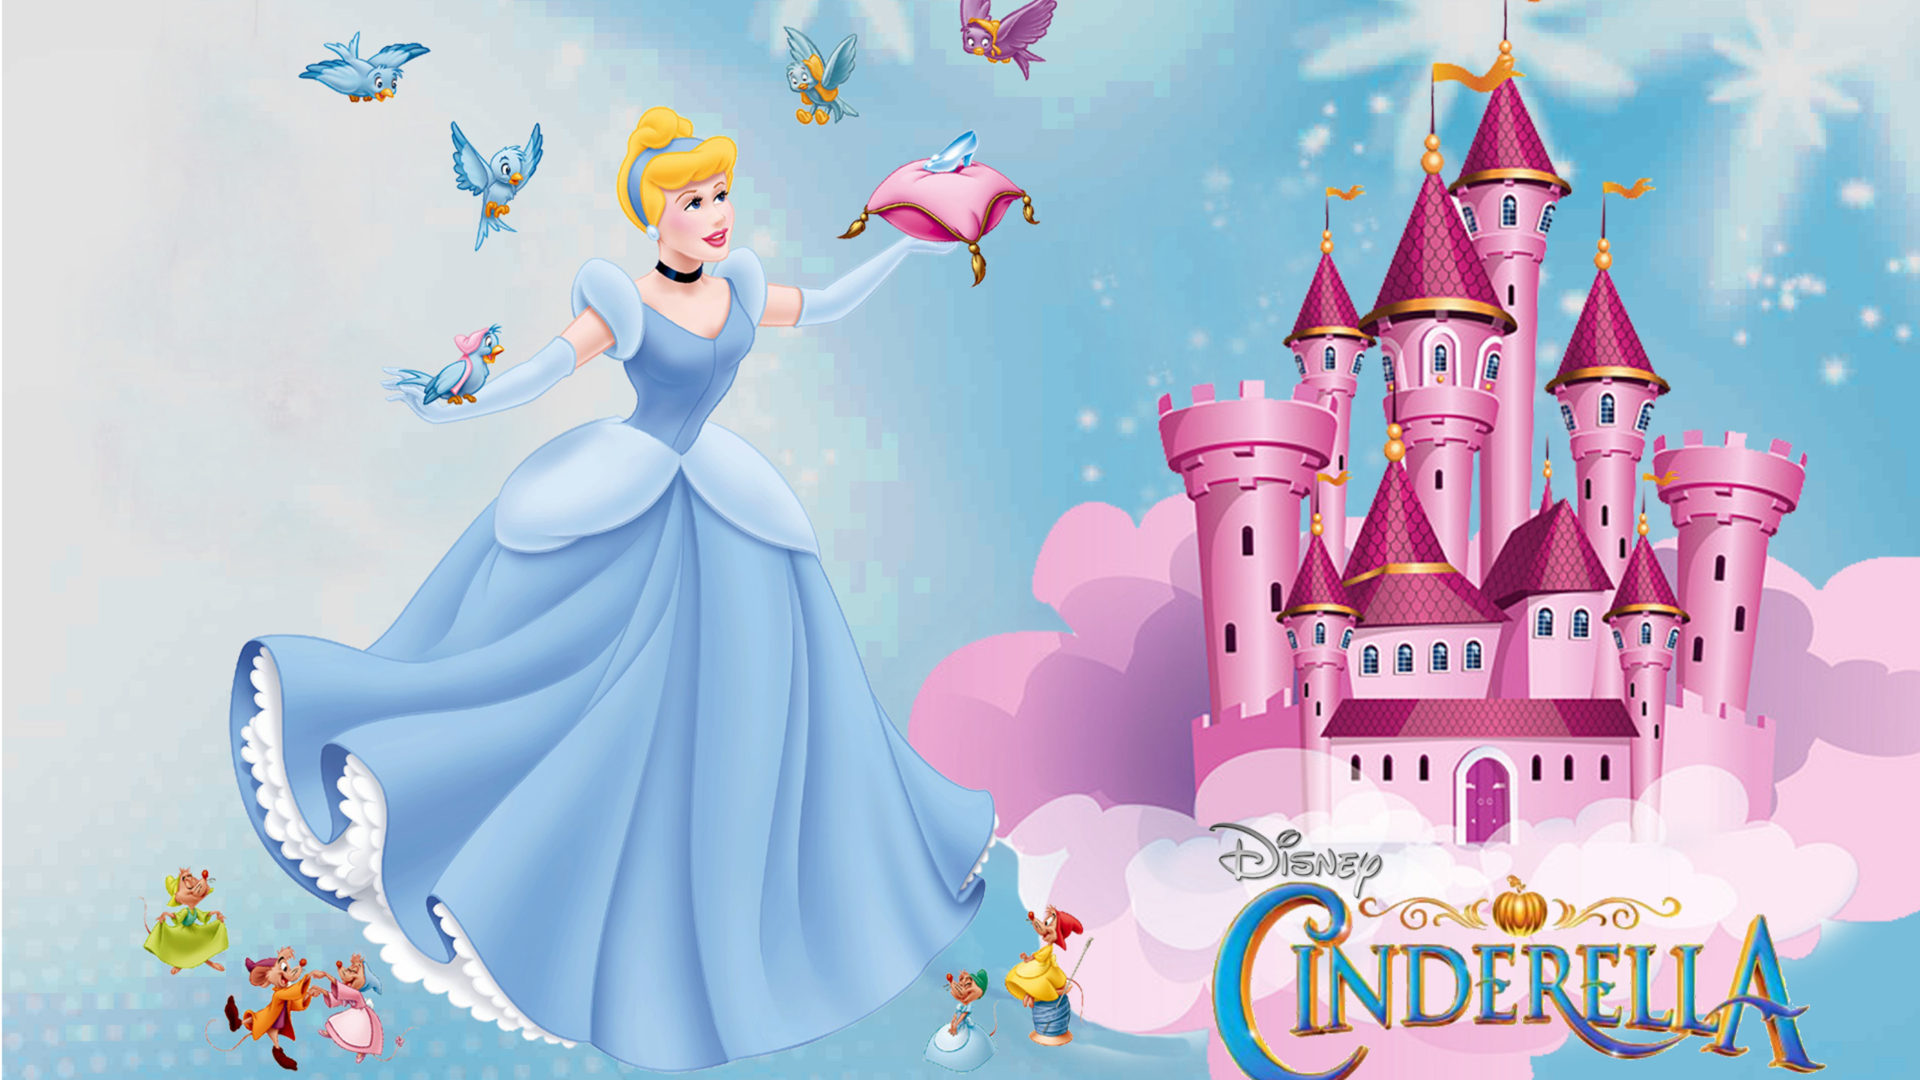 Cartoon Wallpaper Iphone X Castle Of Princess Cinderella Friends Jaq Gus Mary And